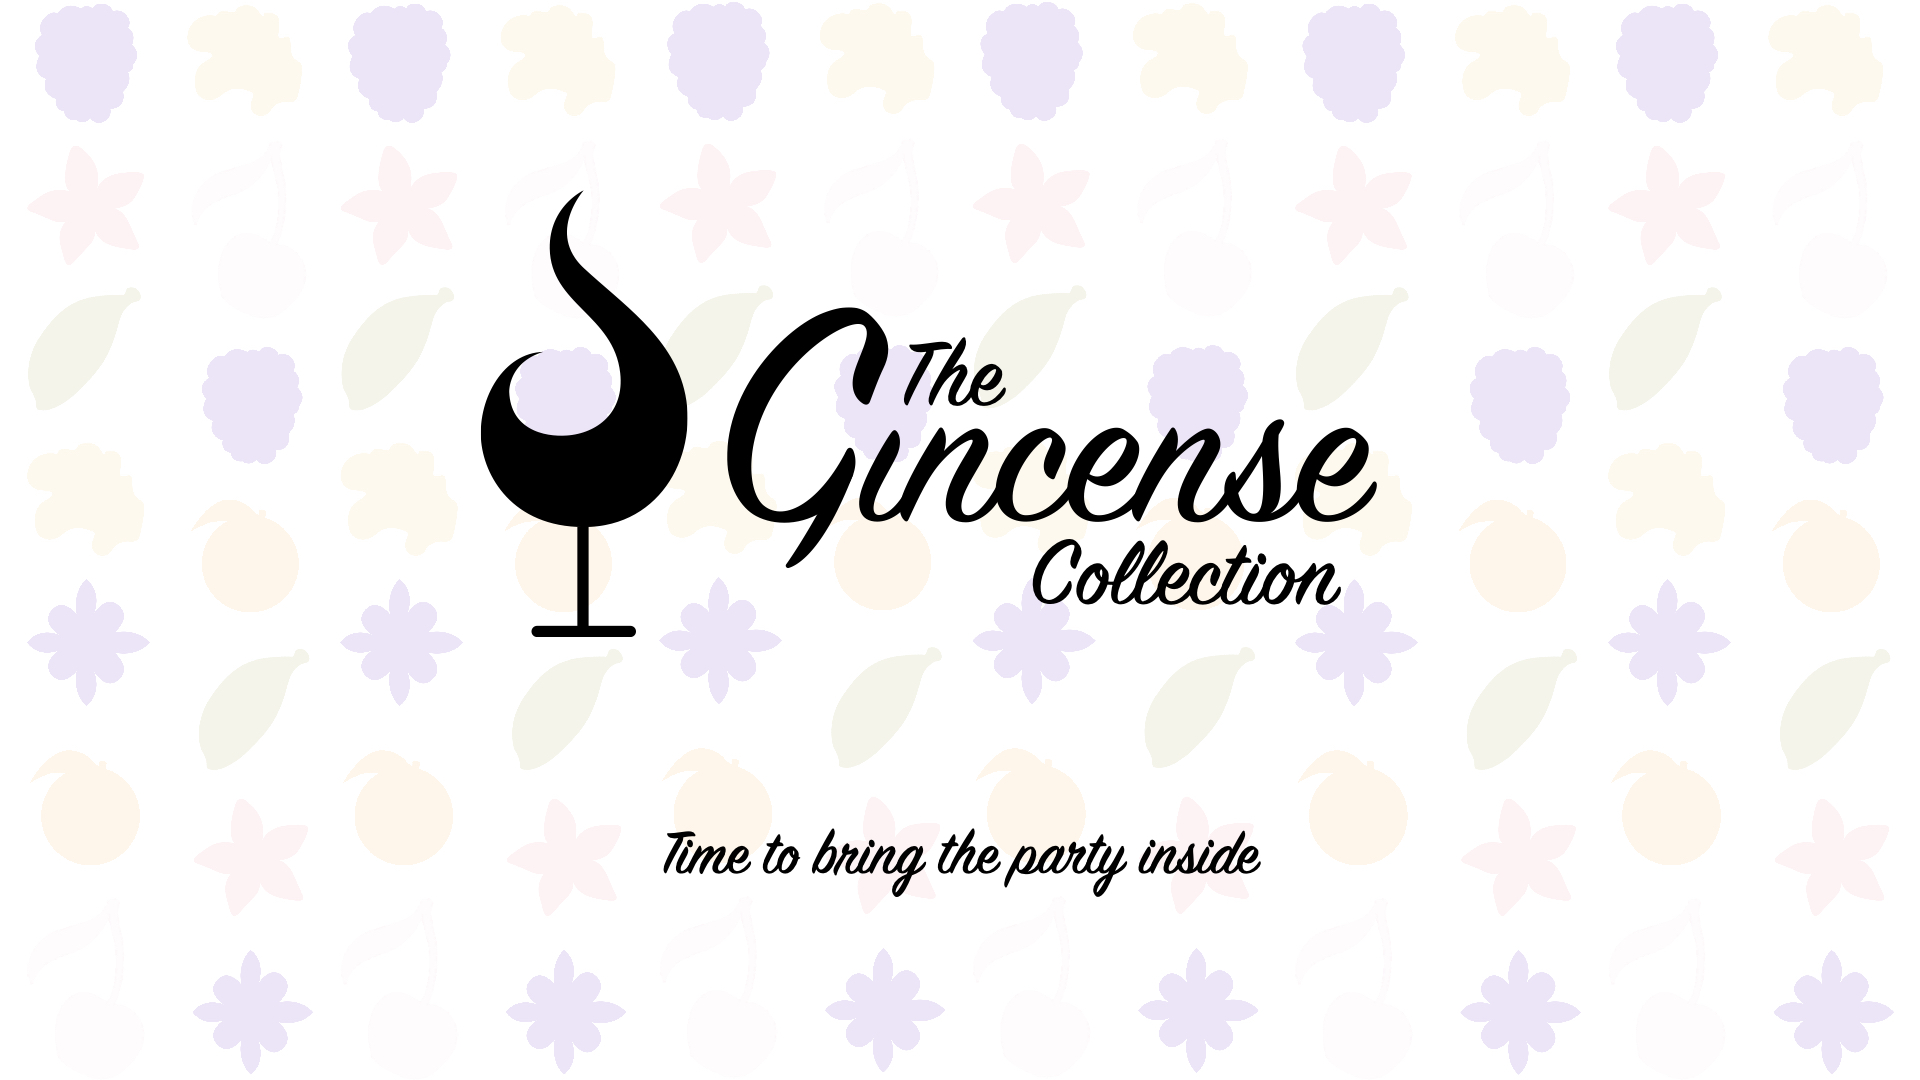 The Gincense Collection Image